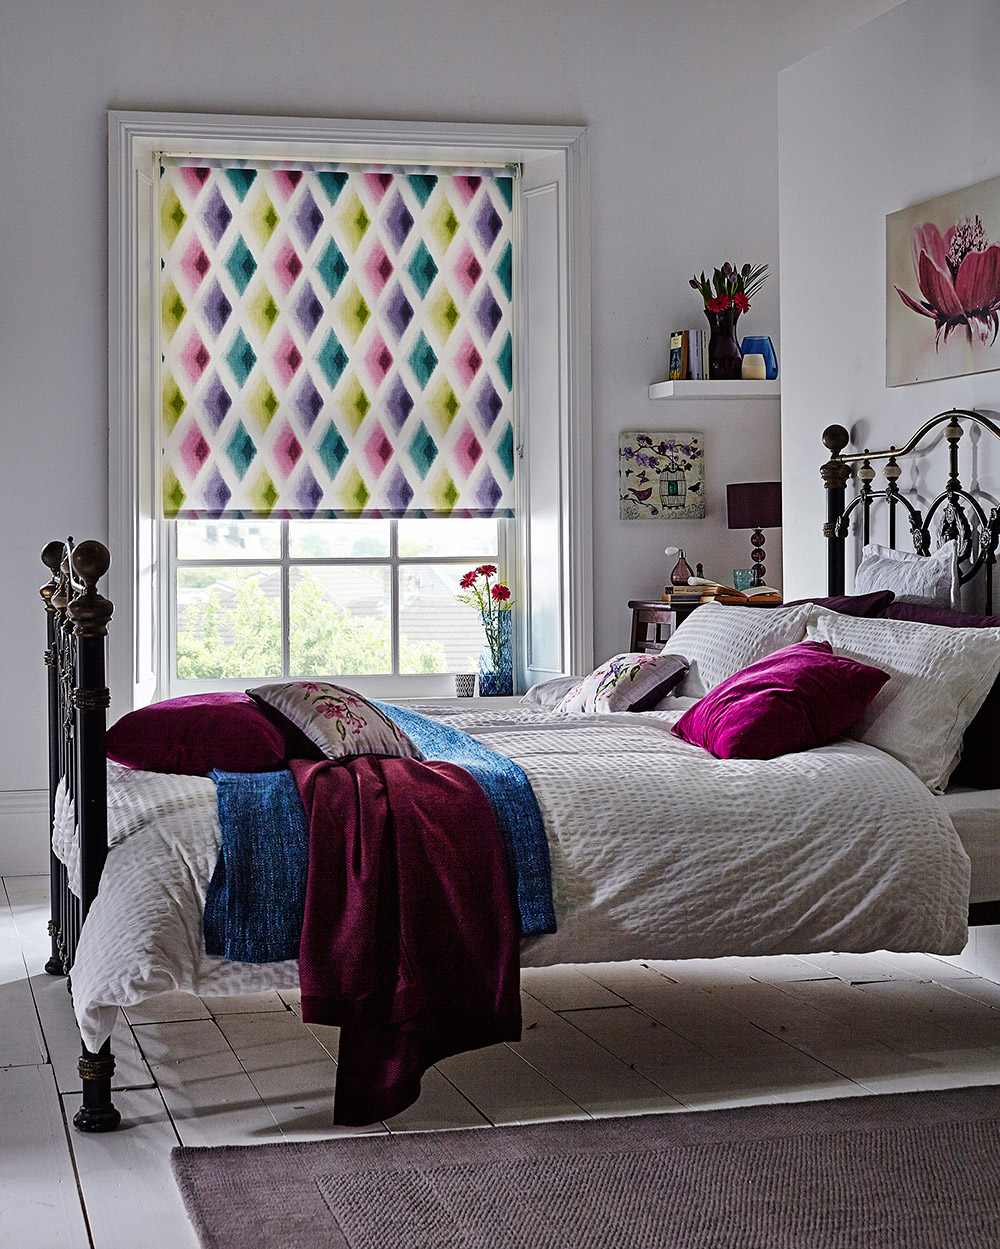 Venetian Blinds Bedroom Bedroom Colour Design Images Bedroom Ceiling Designs Images Dunelm Bedroom Chairs: Venetian, Vertical, Roman